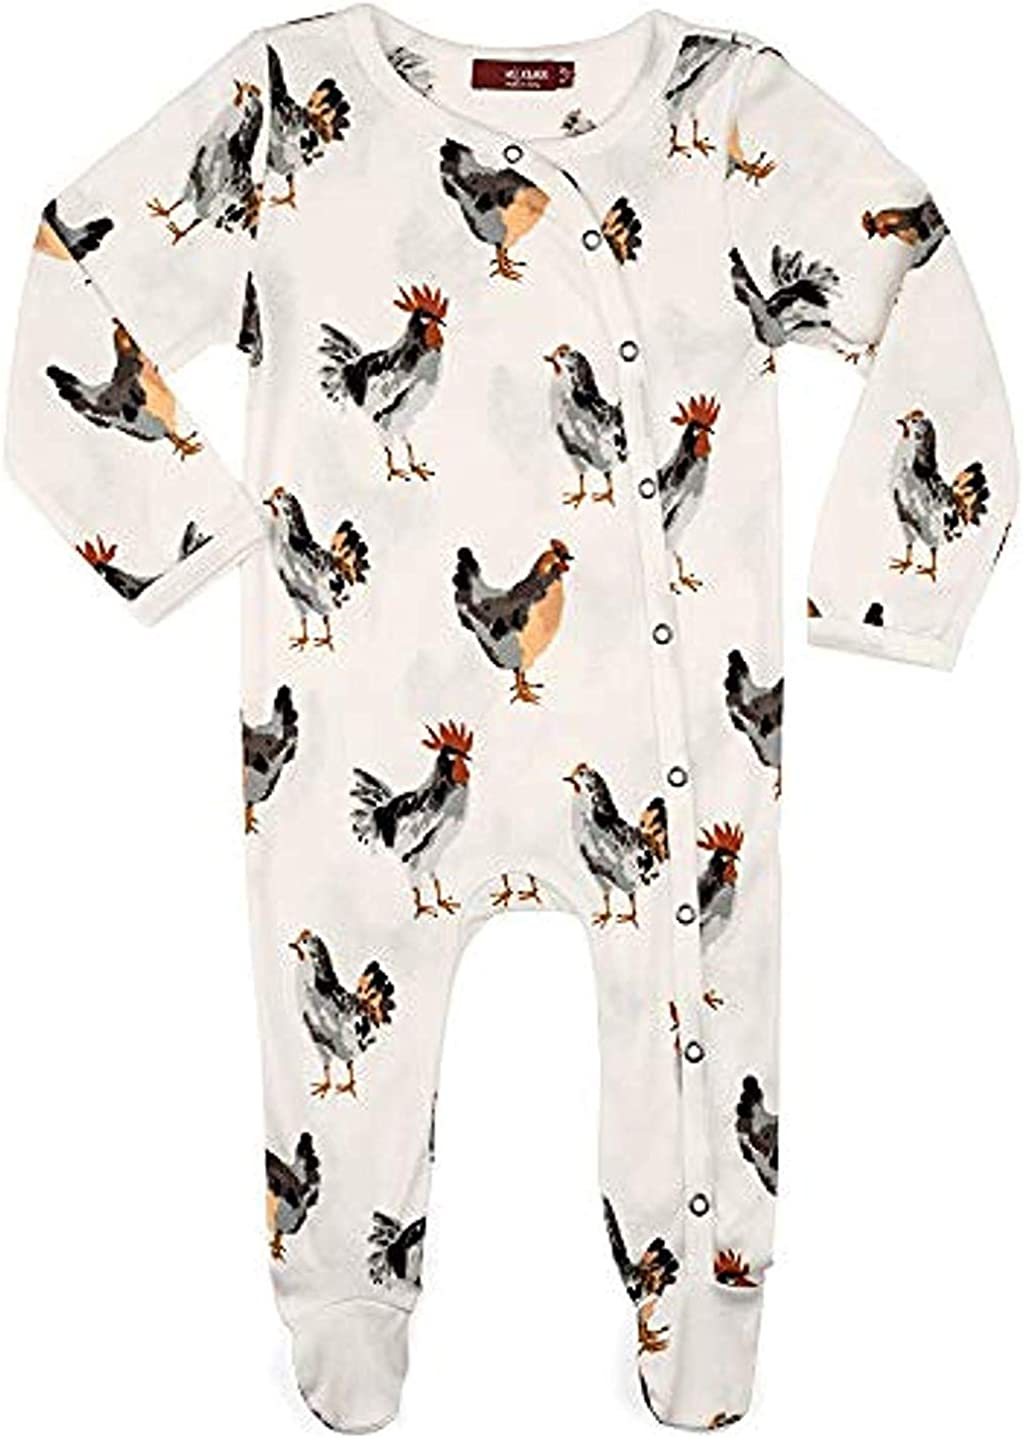 Max 90% OFF MilkBarn Organic Cotton Footed Romper Large special price White Chickens